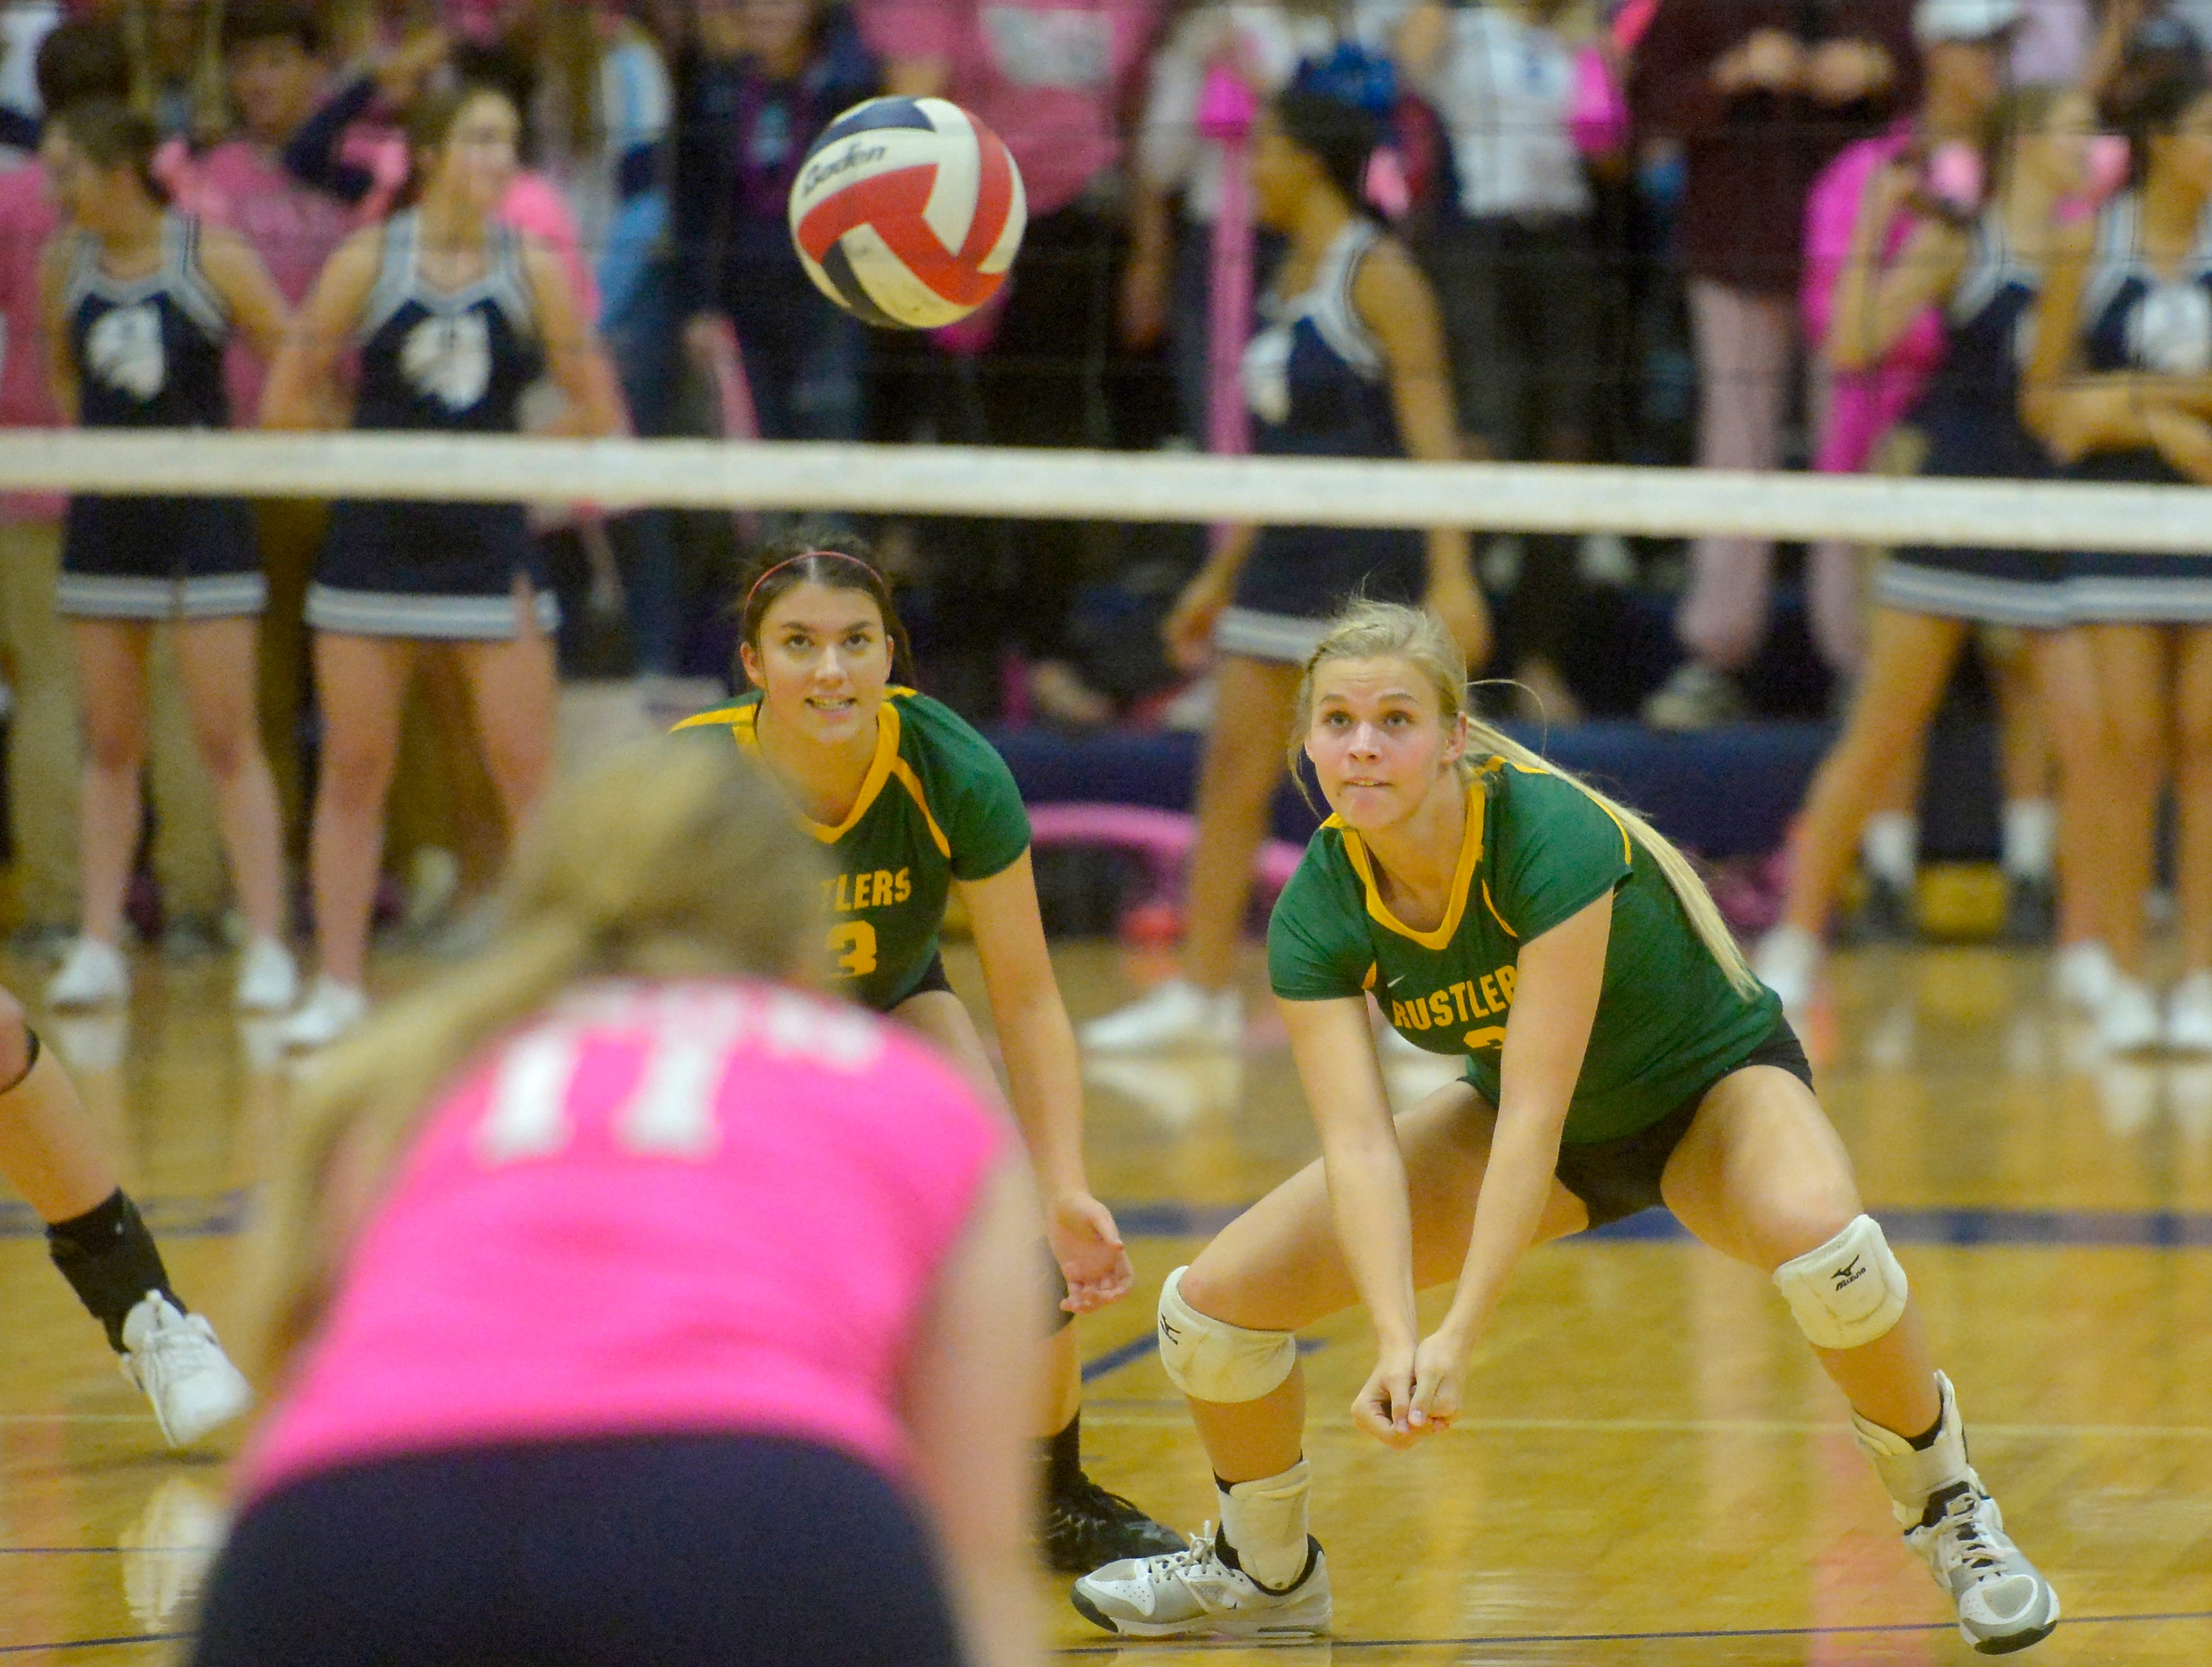 CMR's Ally Dube, left, and Teagan Taylor during the crosstown volleyball match in the Swarthout Fieldhouse, Tuesday.